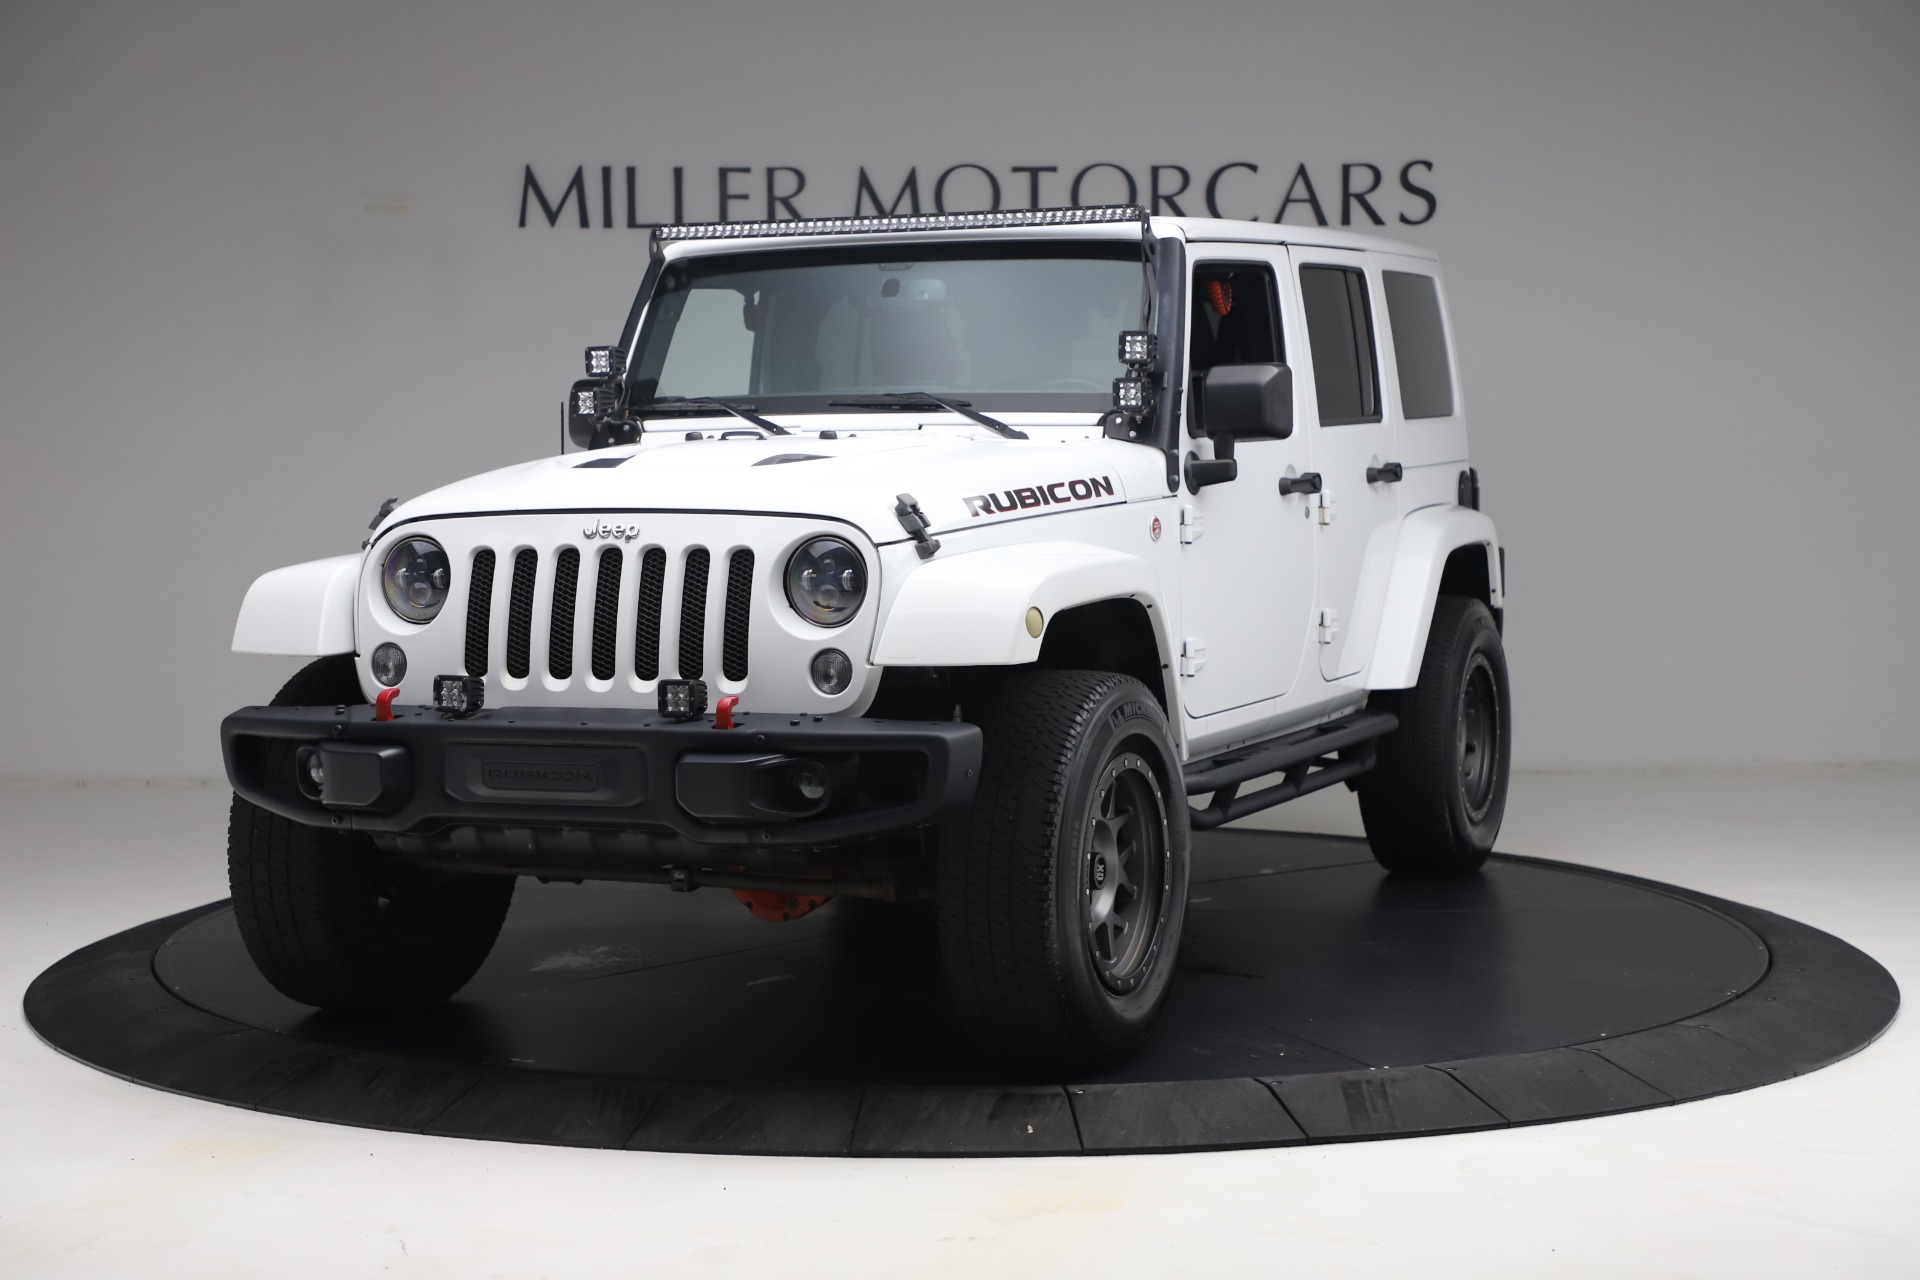 Used 2015 Jeep Wrangler Unlimited Rubicon Hard Rock for sale $39,900 at Pagani of Greenwich in Greenwich CT 06830 1